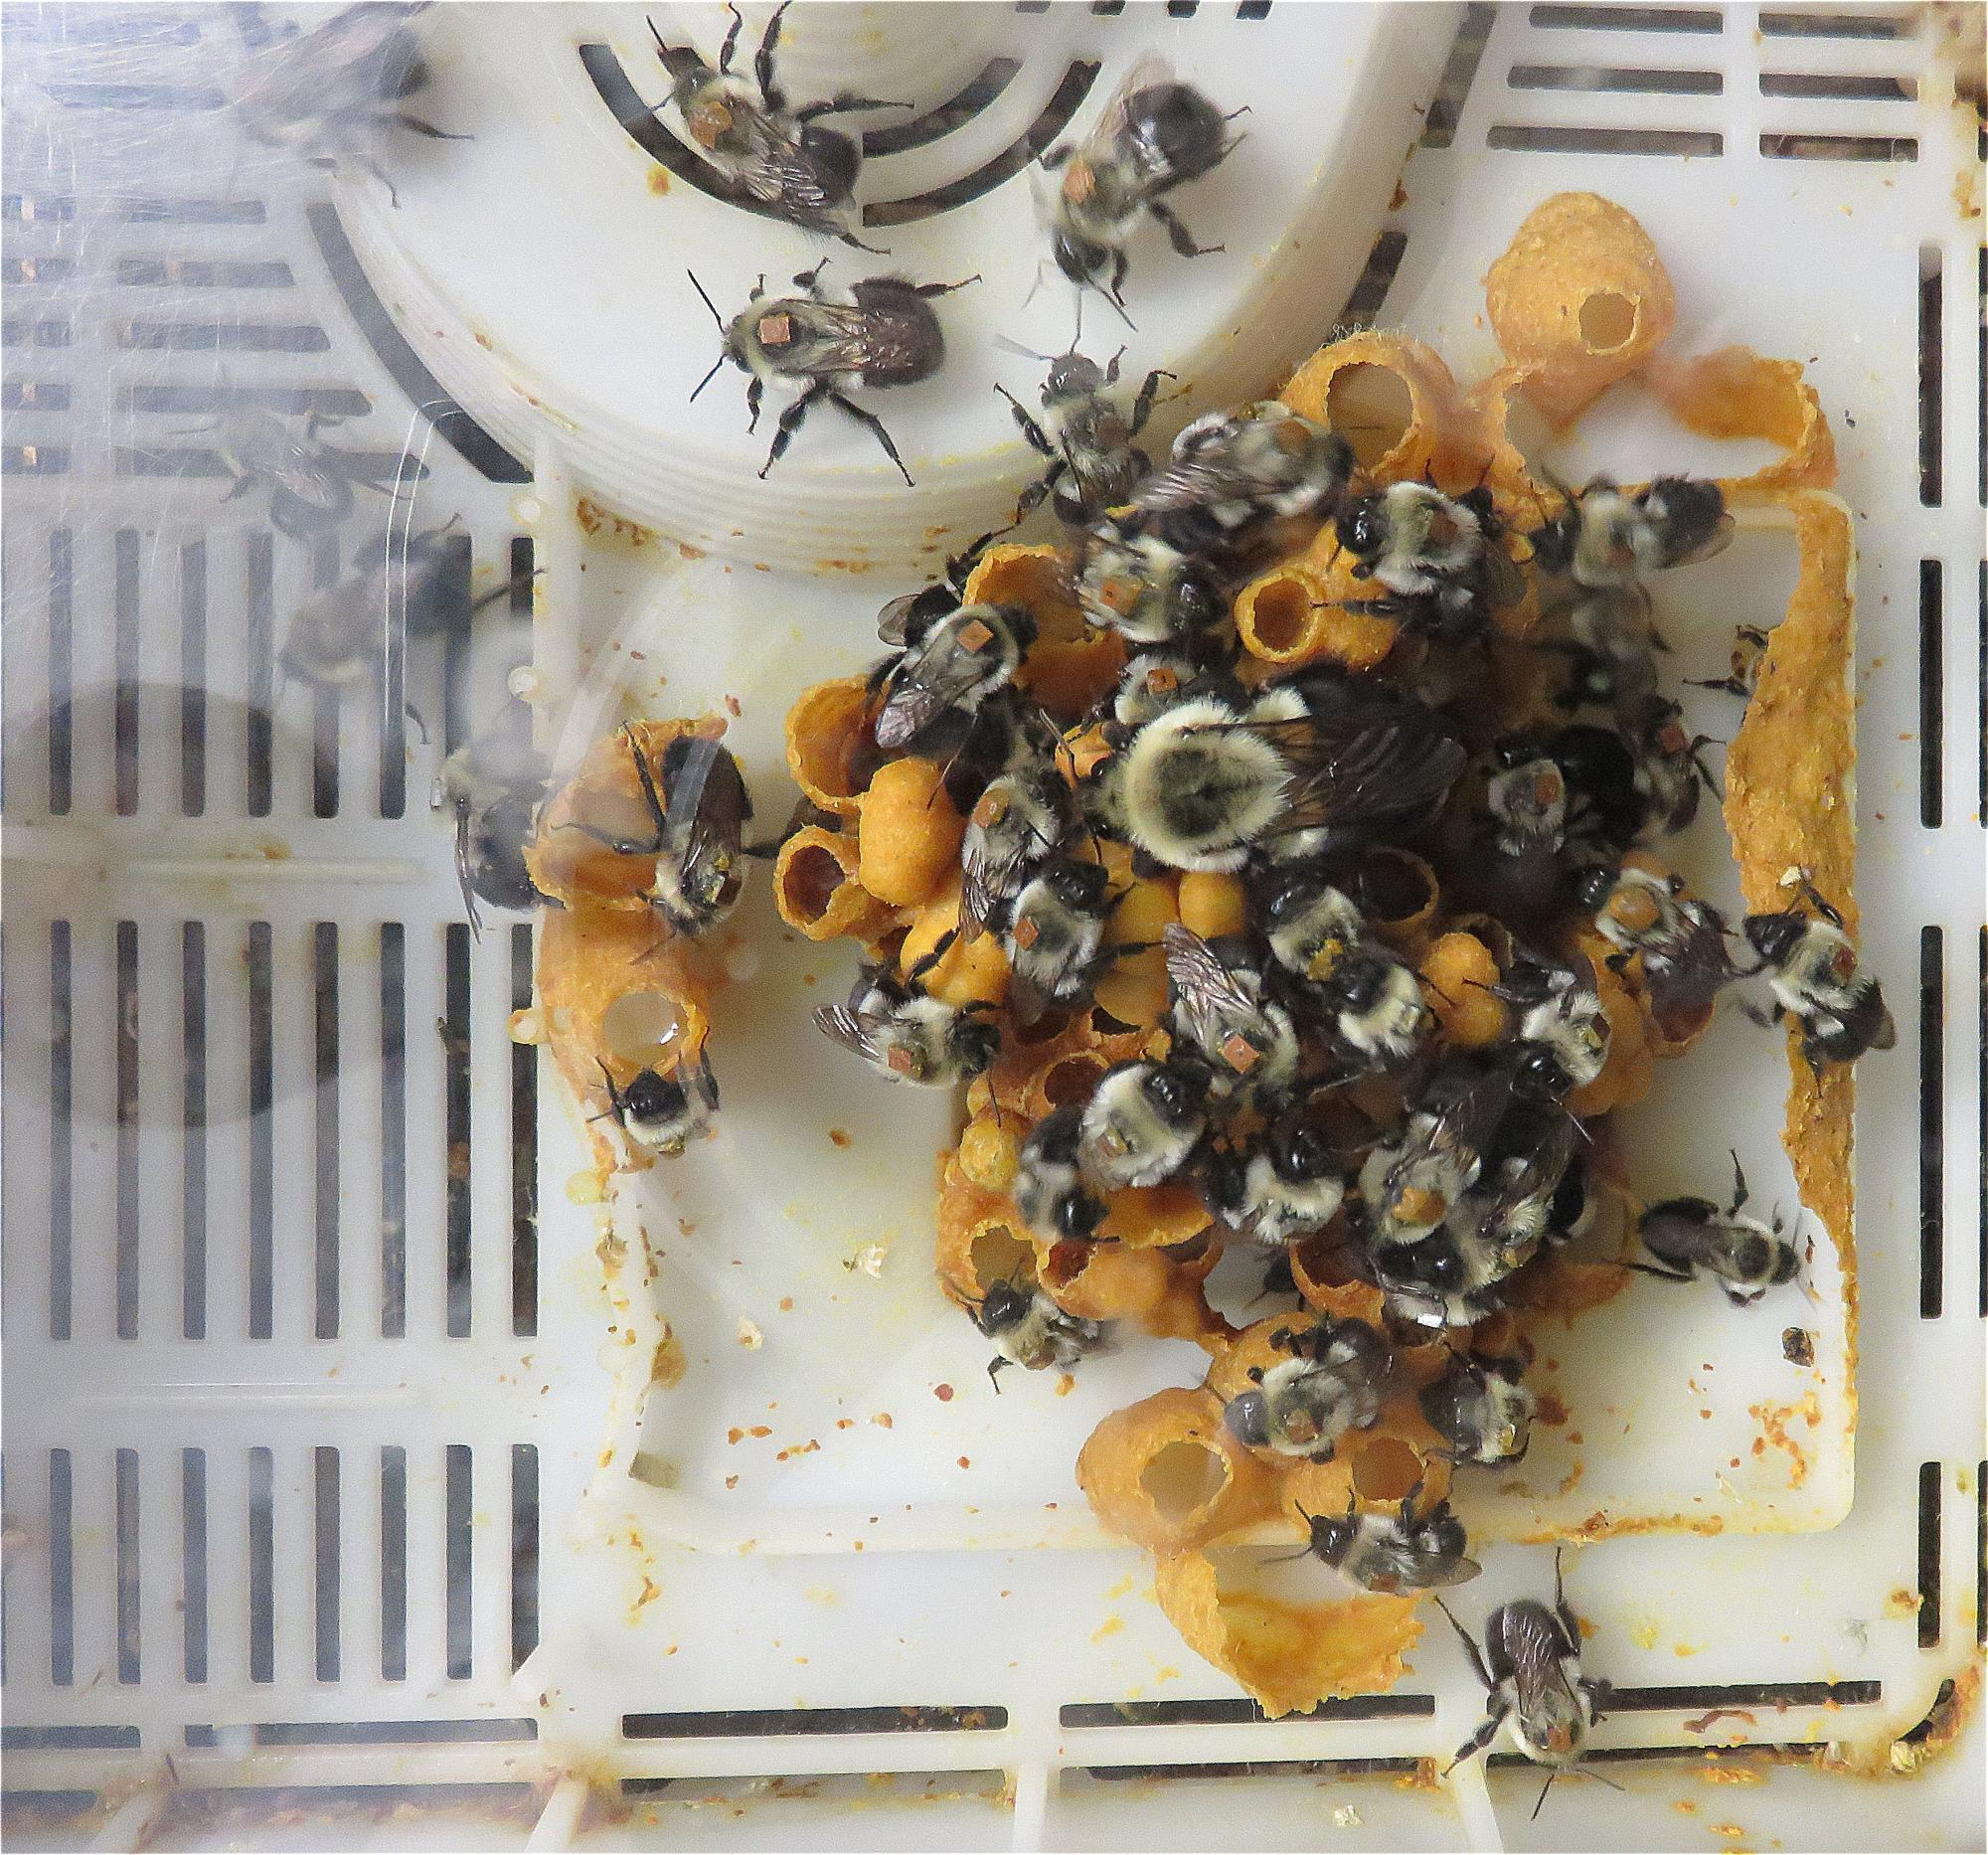 Home improvement: Bumblebee workers are busy constructing the hive used in this laboratory study.